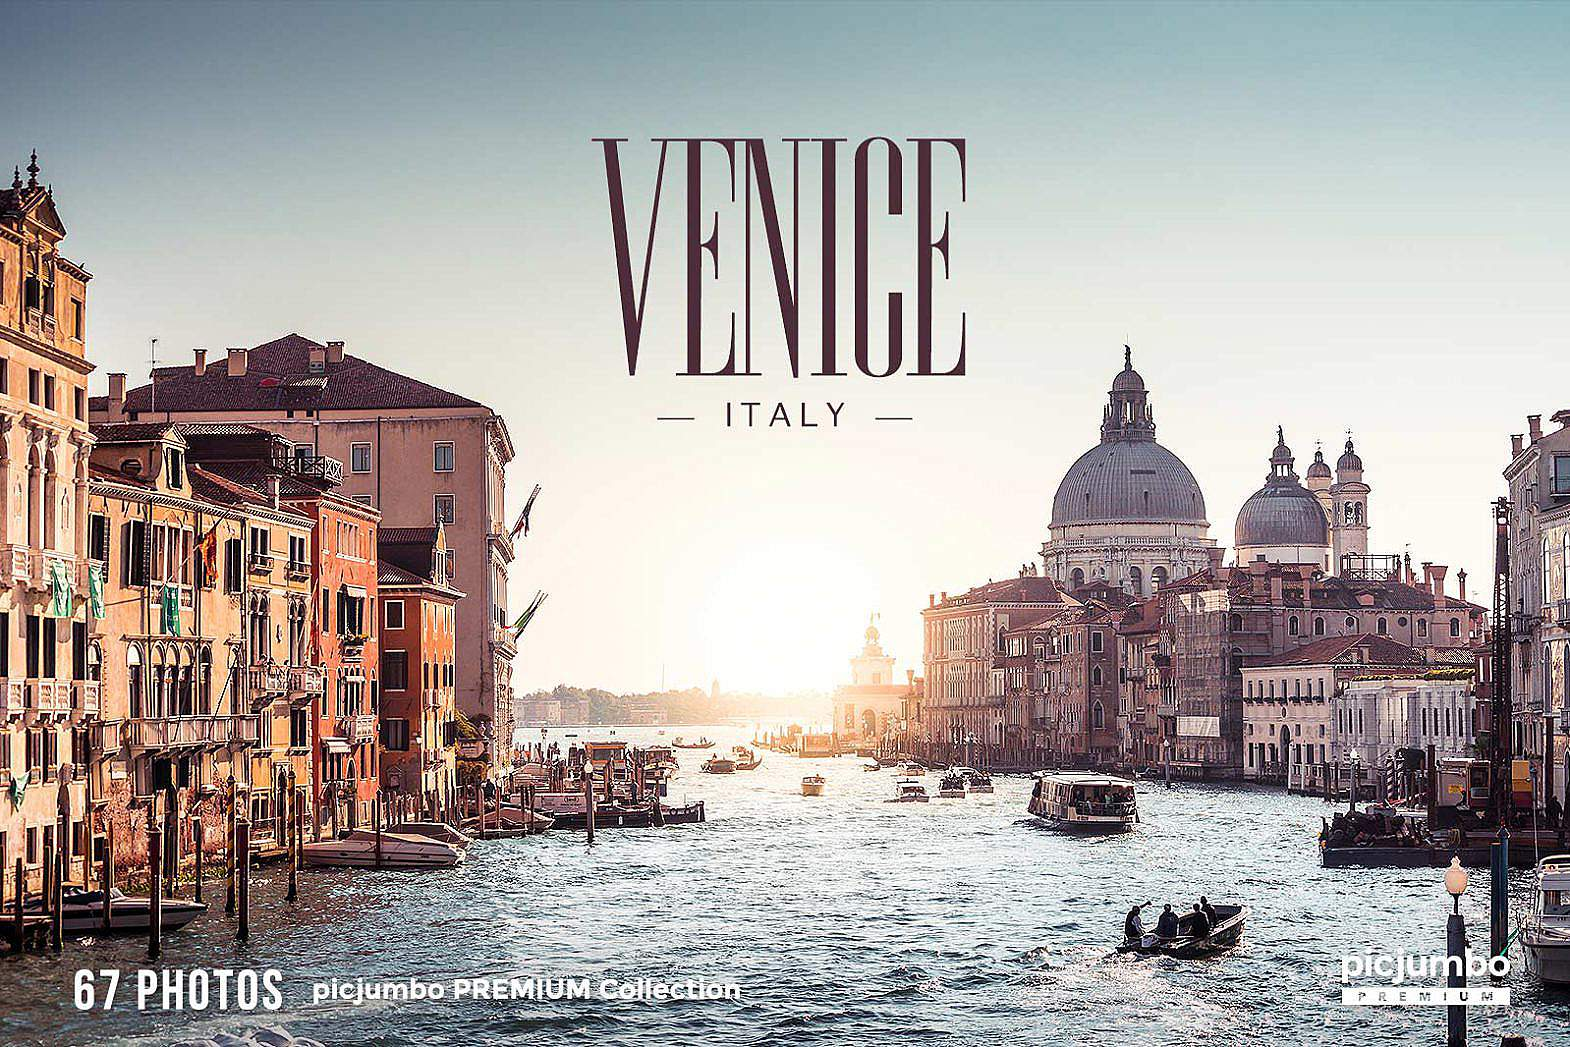 Venice, Italy Stock Photos Collection By Picjumbo